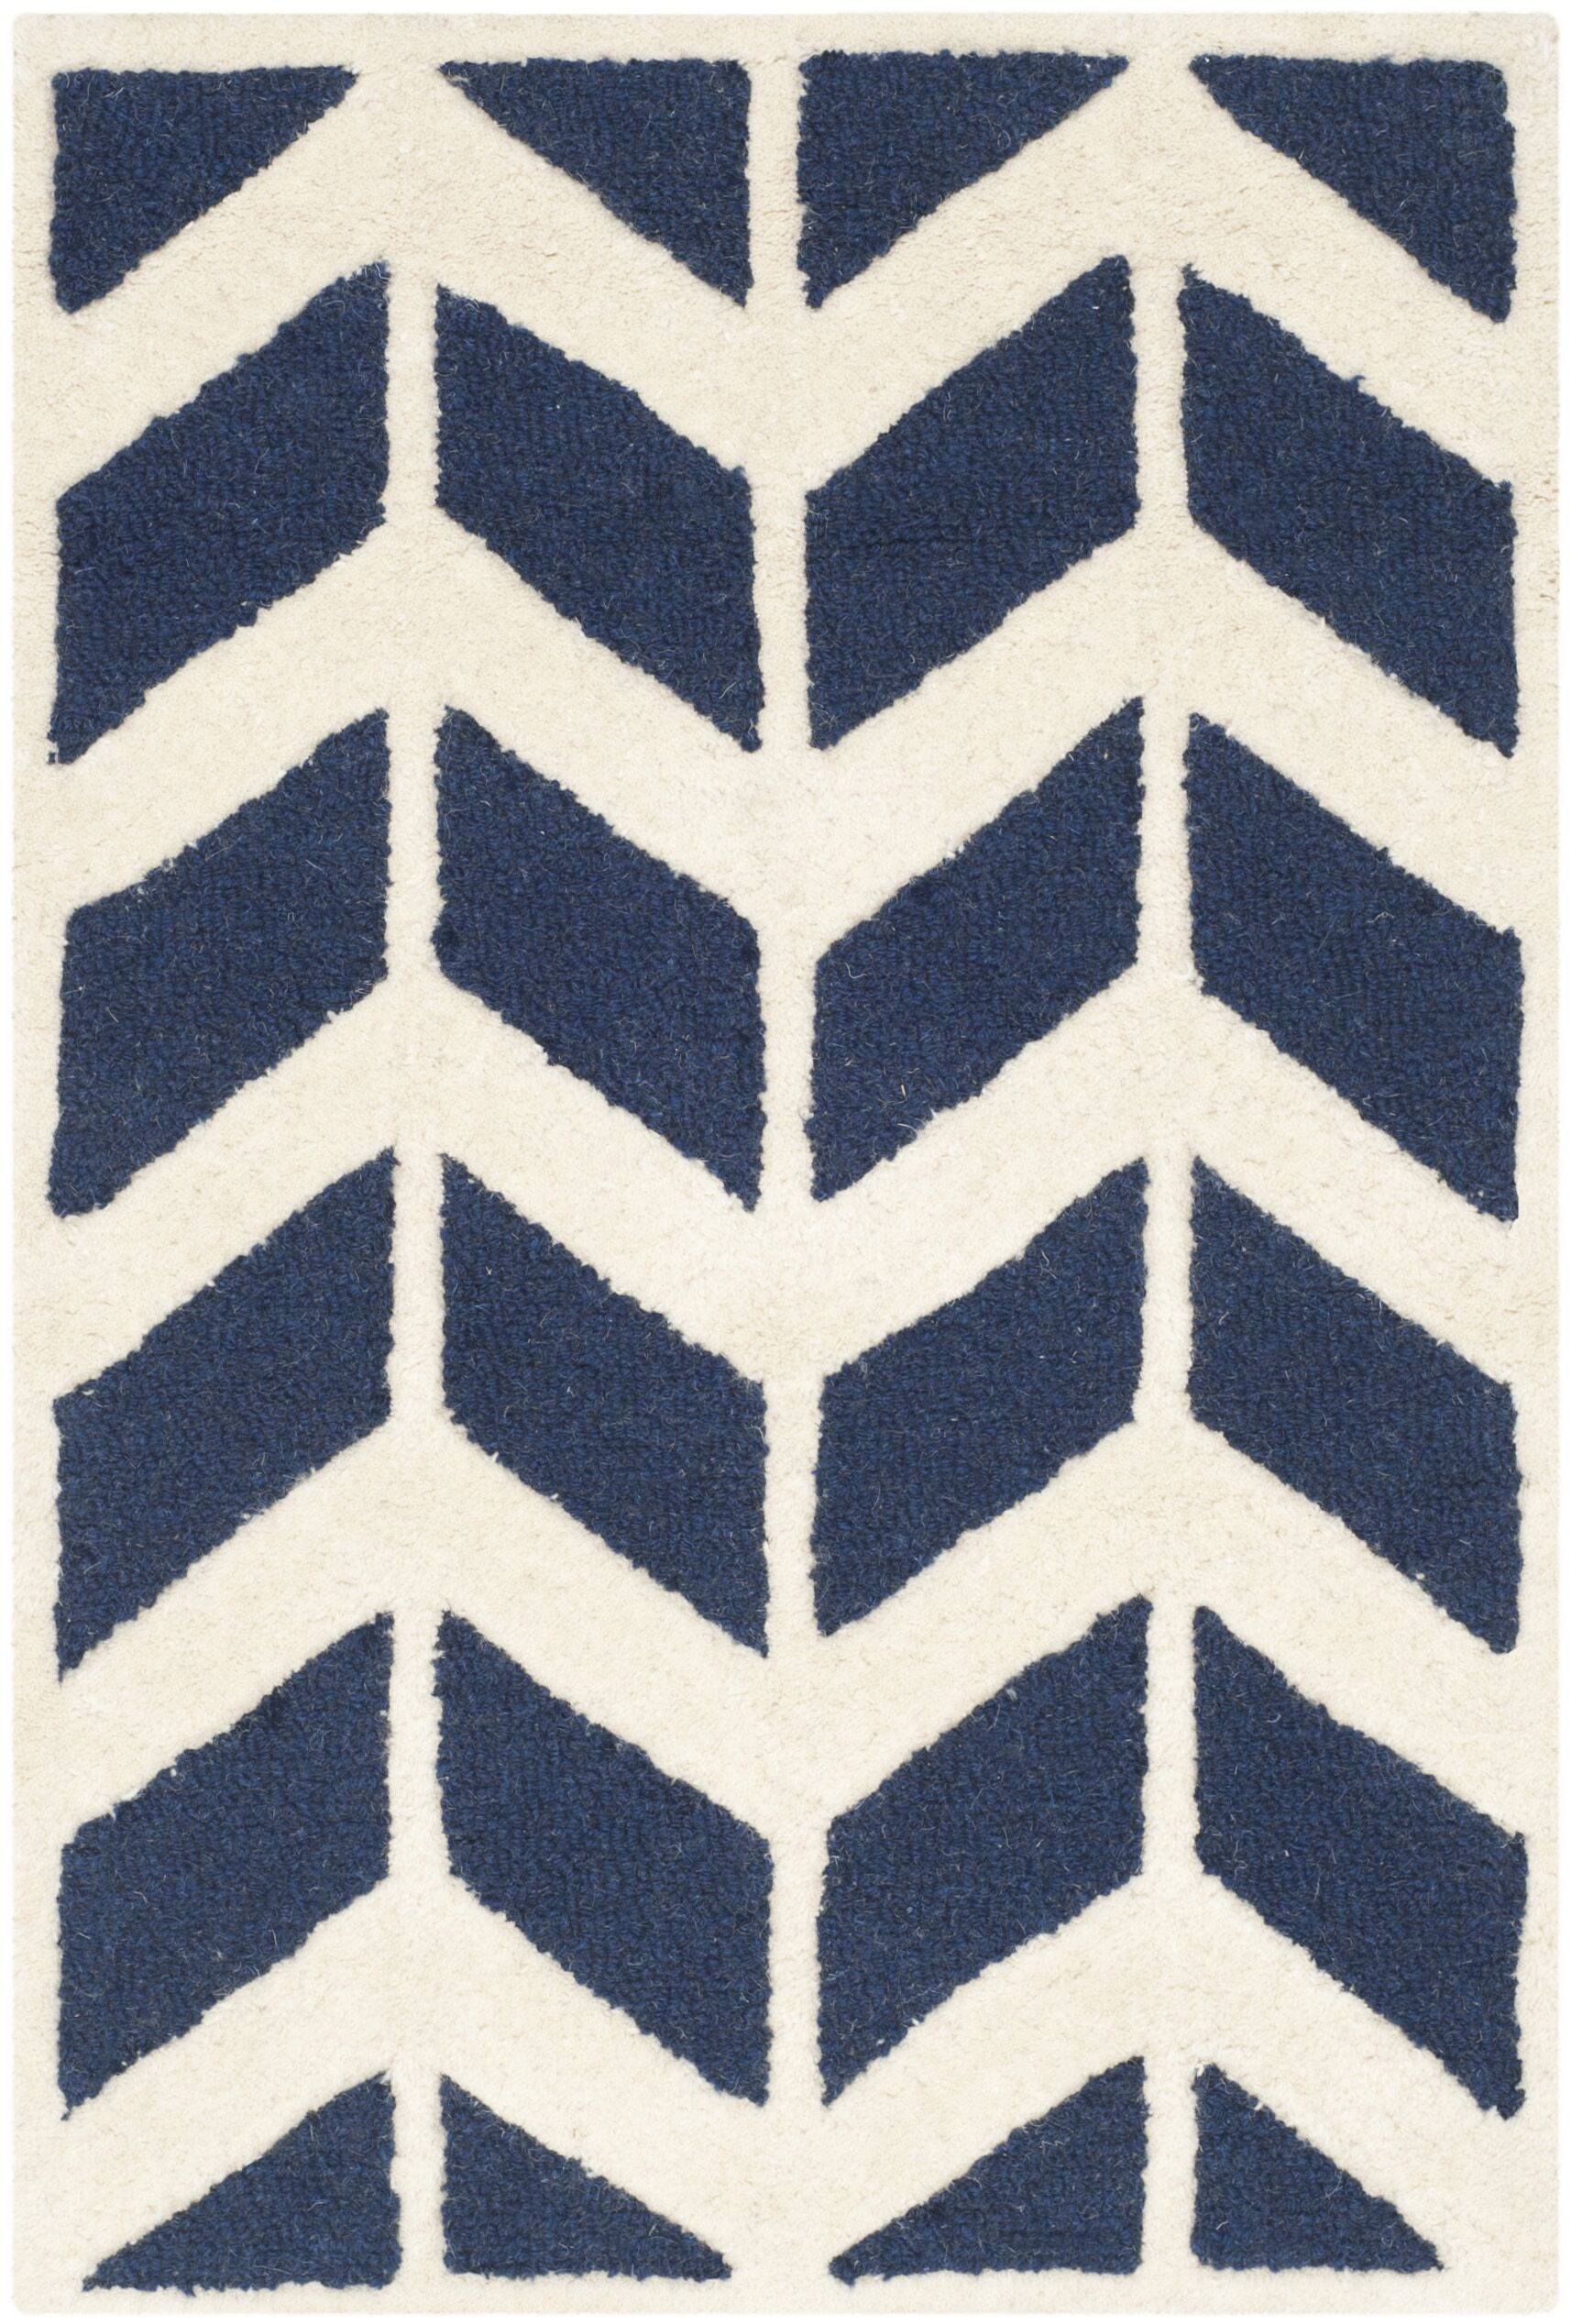 Esperance Navy / Ivory Area Rug Rug Size: Rectangle 2' x 3'